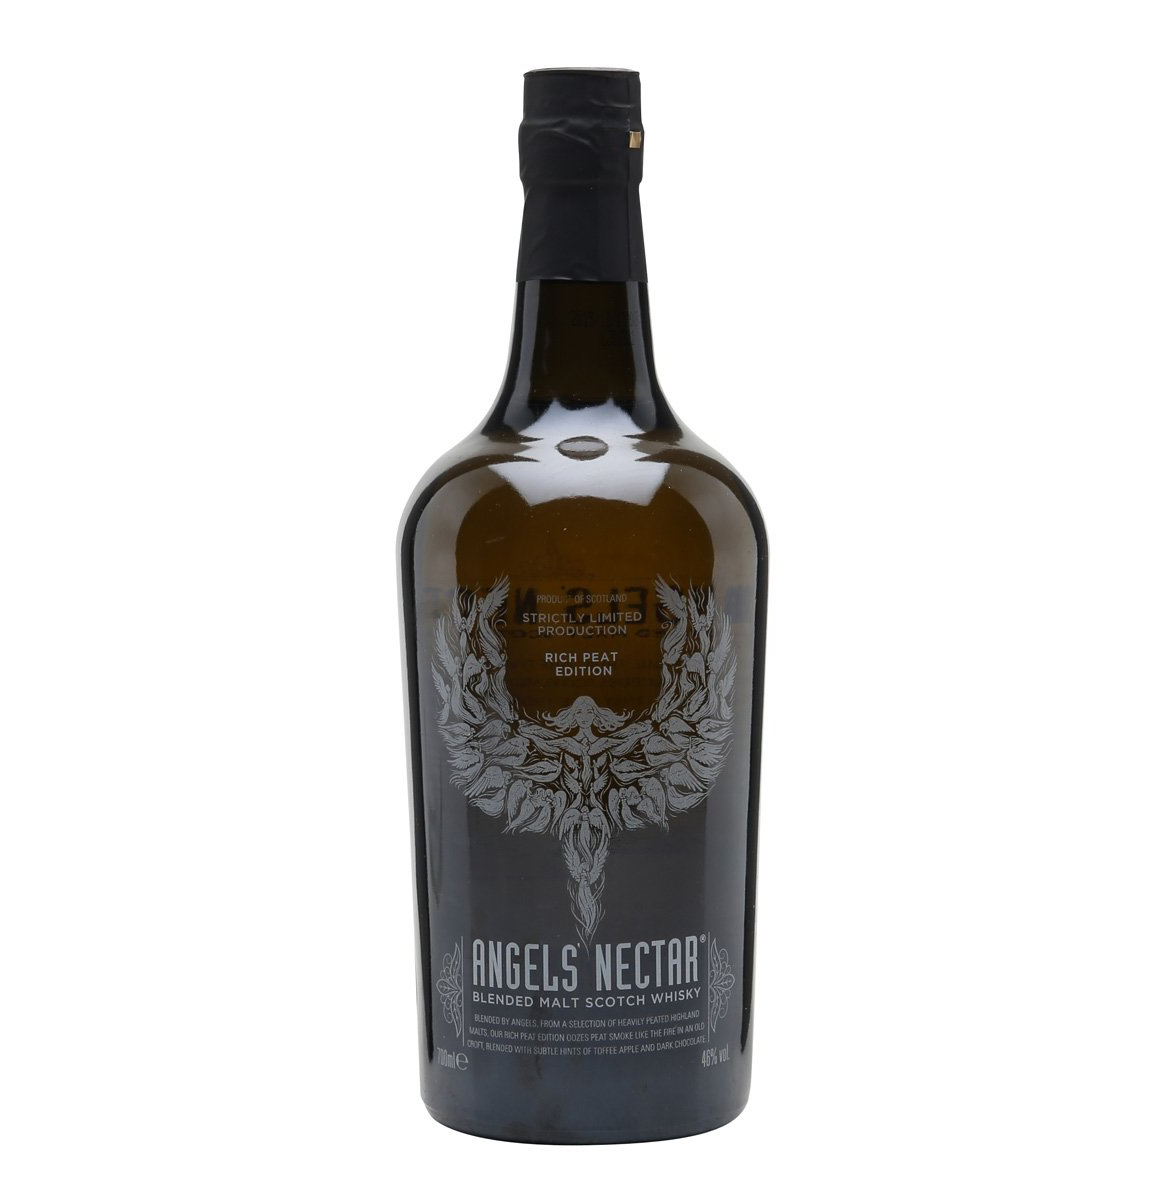 Angels Nectar Rich Peat Edition 70cl